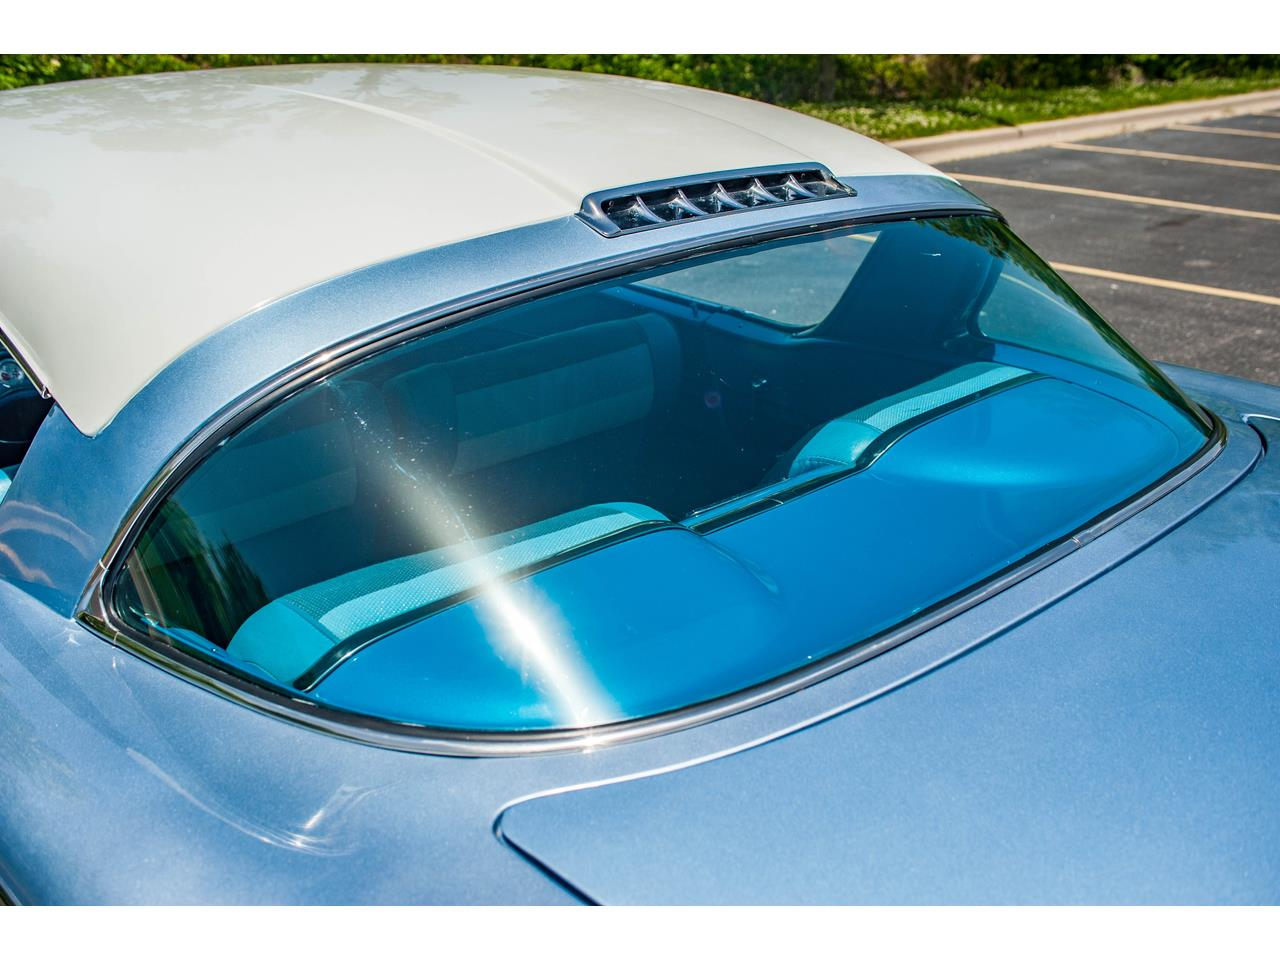 Large Picture of '58 Impala - $62,000.00 Offered by Gateway Classic Cars - St. Louis - QB9Q